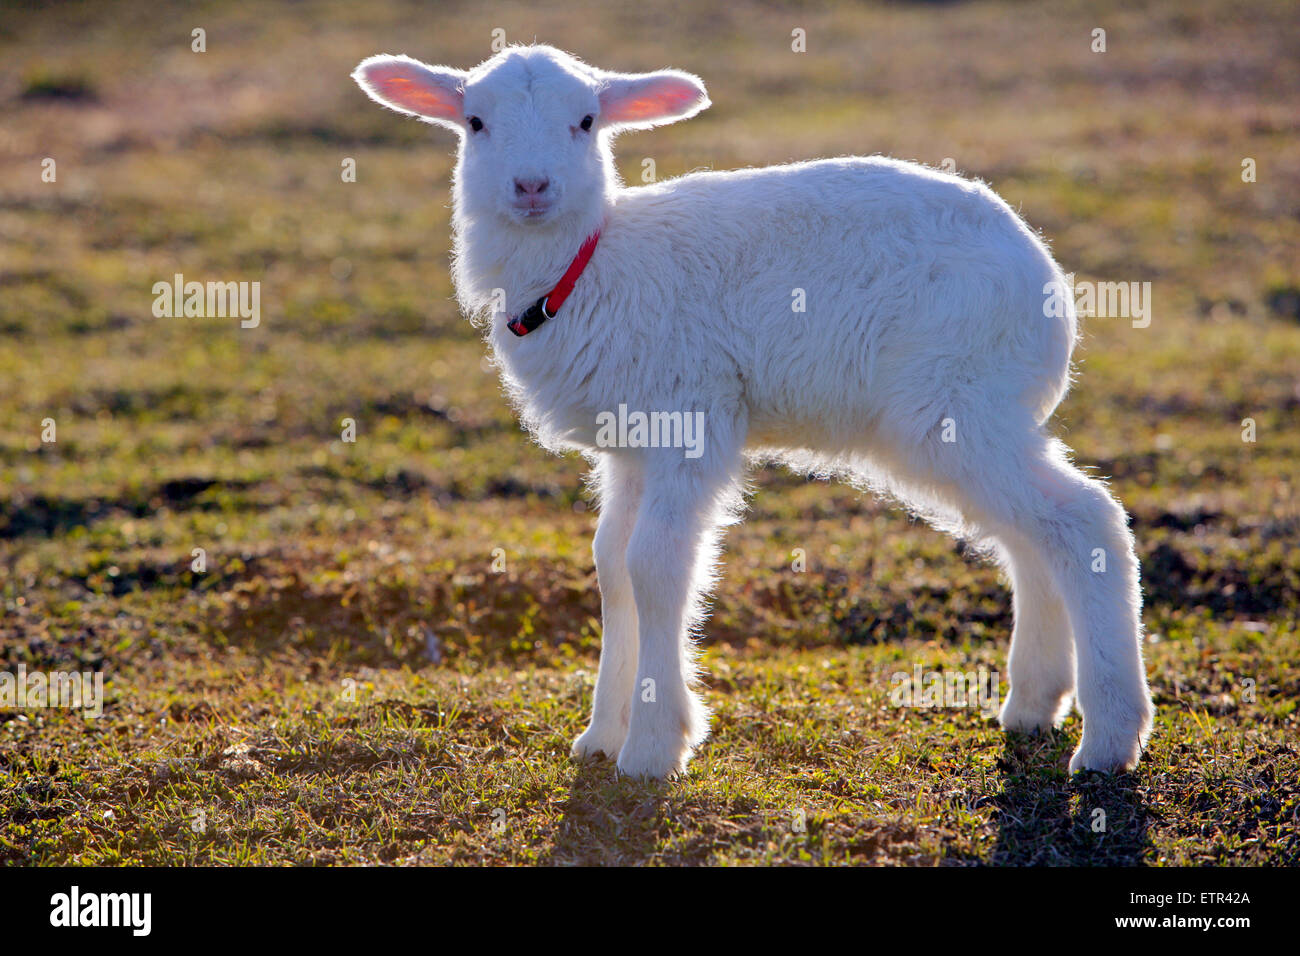 Portrait of  few week old Lamb standing in meadow - Stock Image